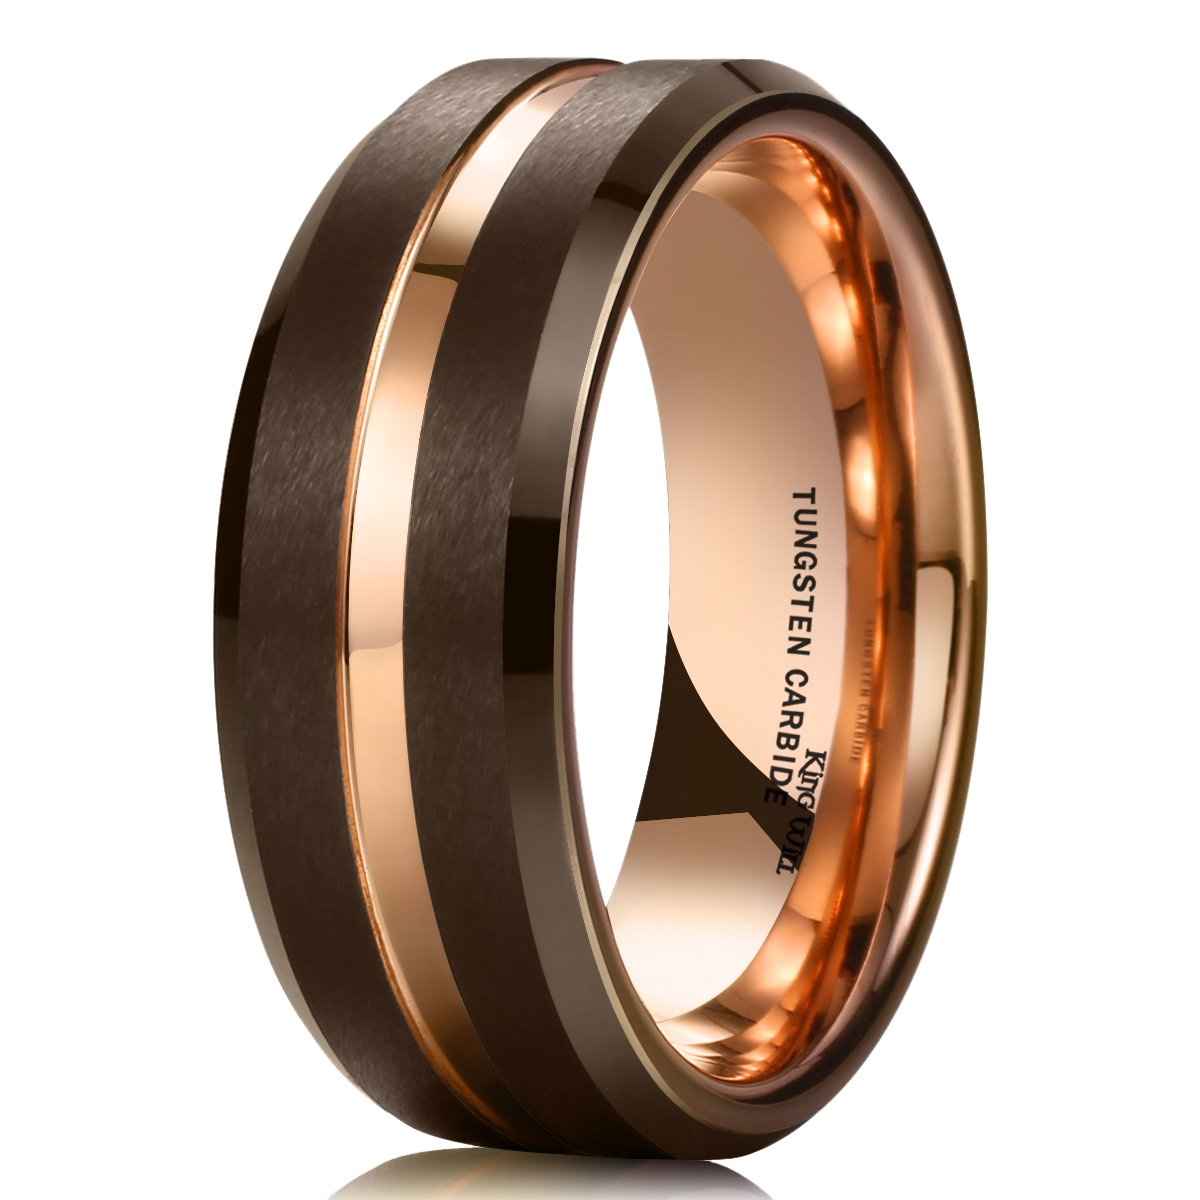 King Will DUO 8mm Brown Brushed Tungsten Carbide Wedding Band Ring Thin Rose Gold Groove Comfort Fit 11